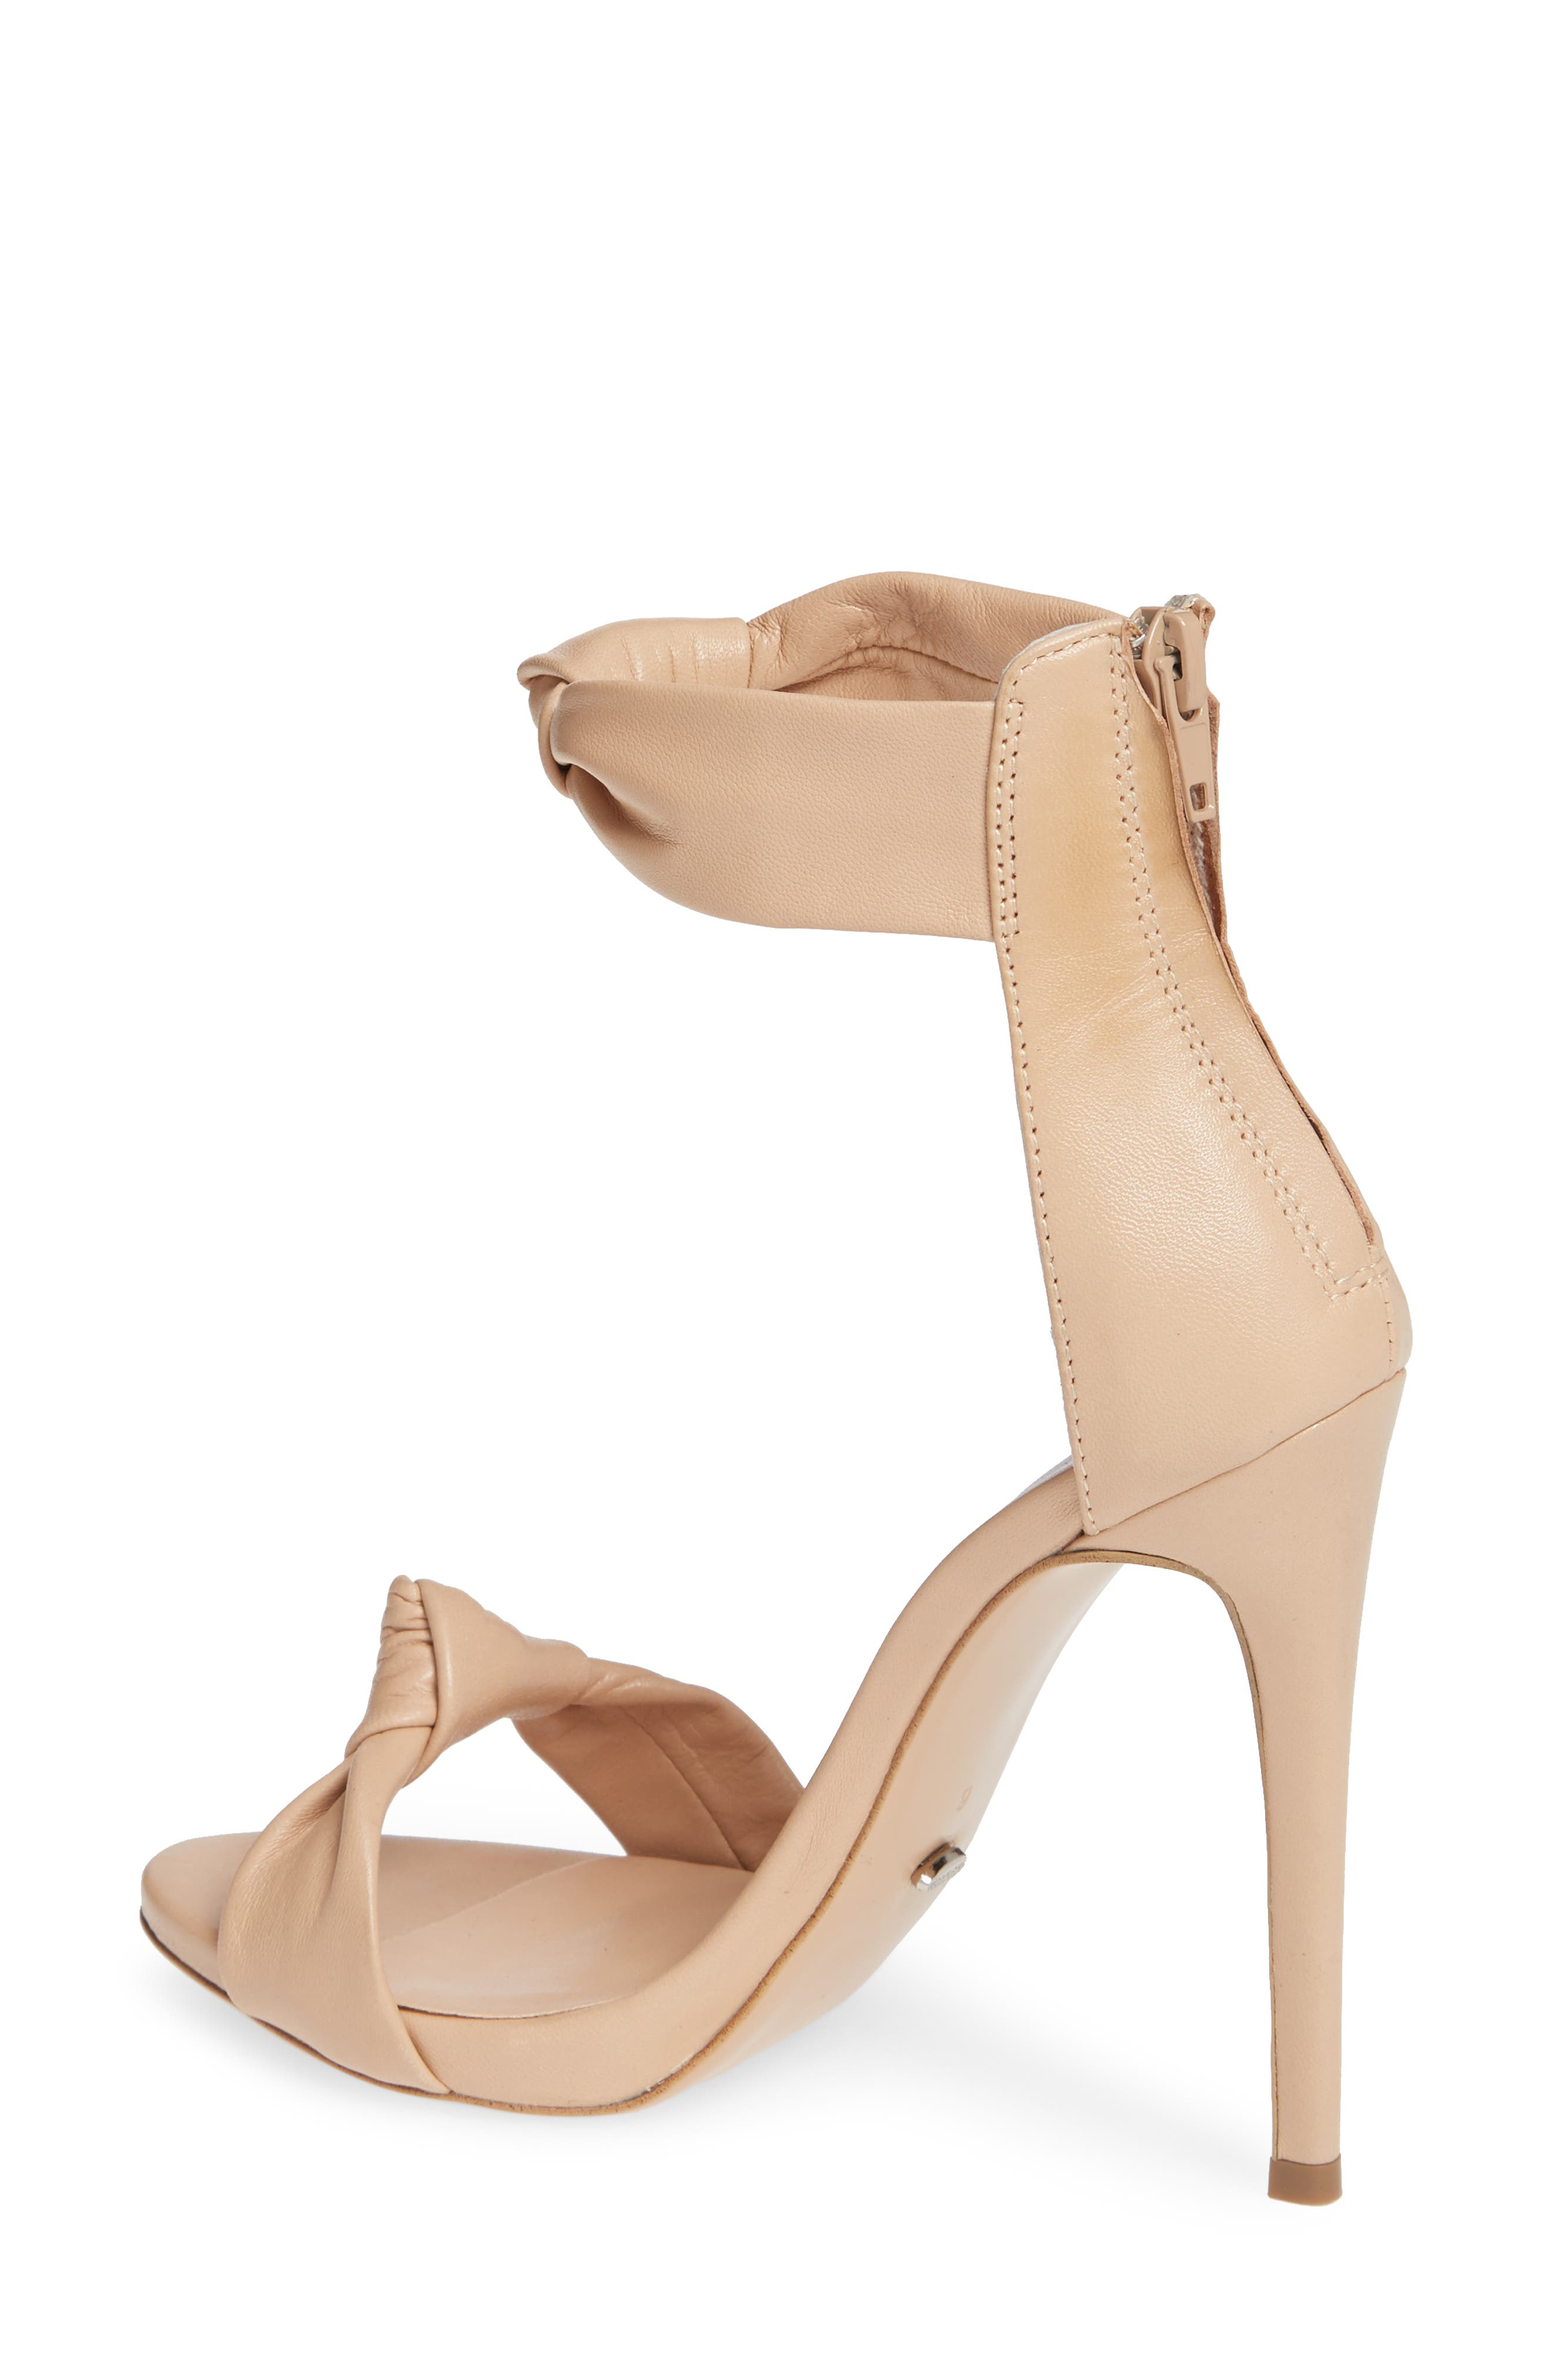 Anabelle Sandal,                             Alternate thumbnail 2, color,                             BEIGE LEATHER